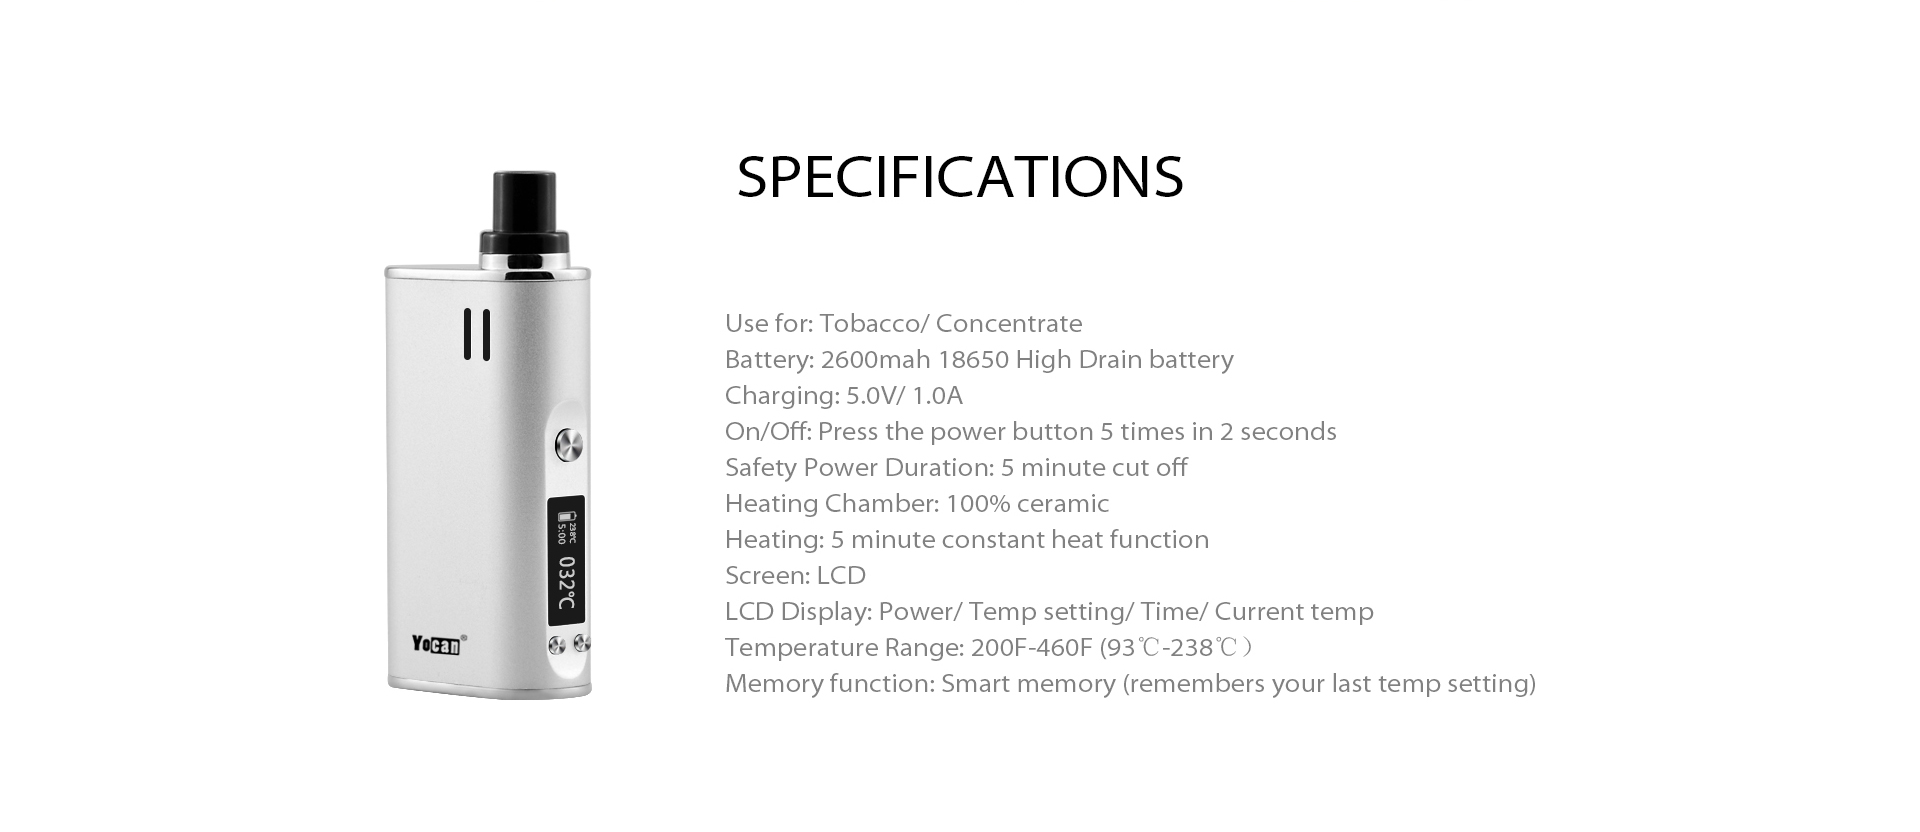 The specification of Yocan Explore is a 2-in-1 Multi-vaporizer, Wax and Dry Vaporizer Kit